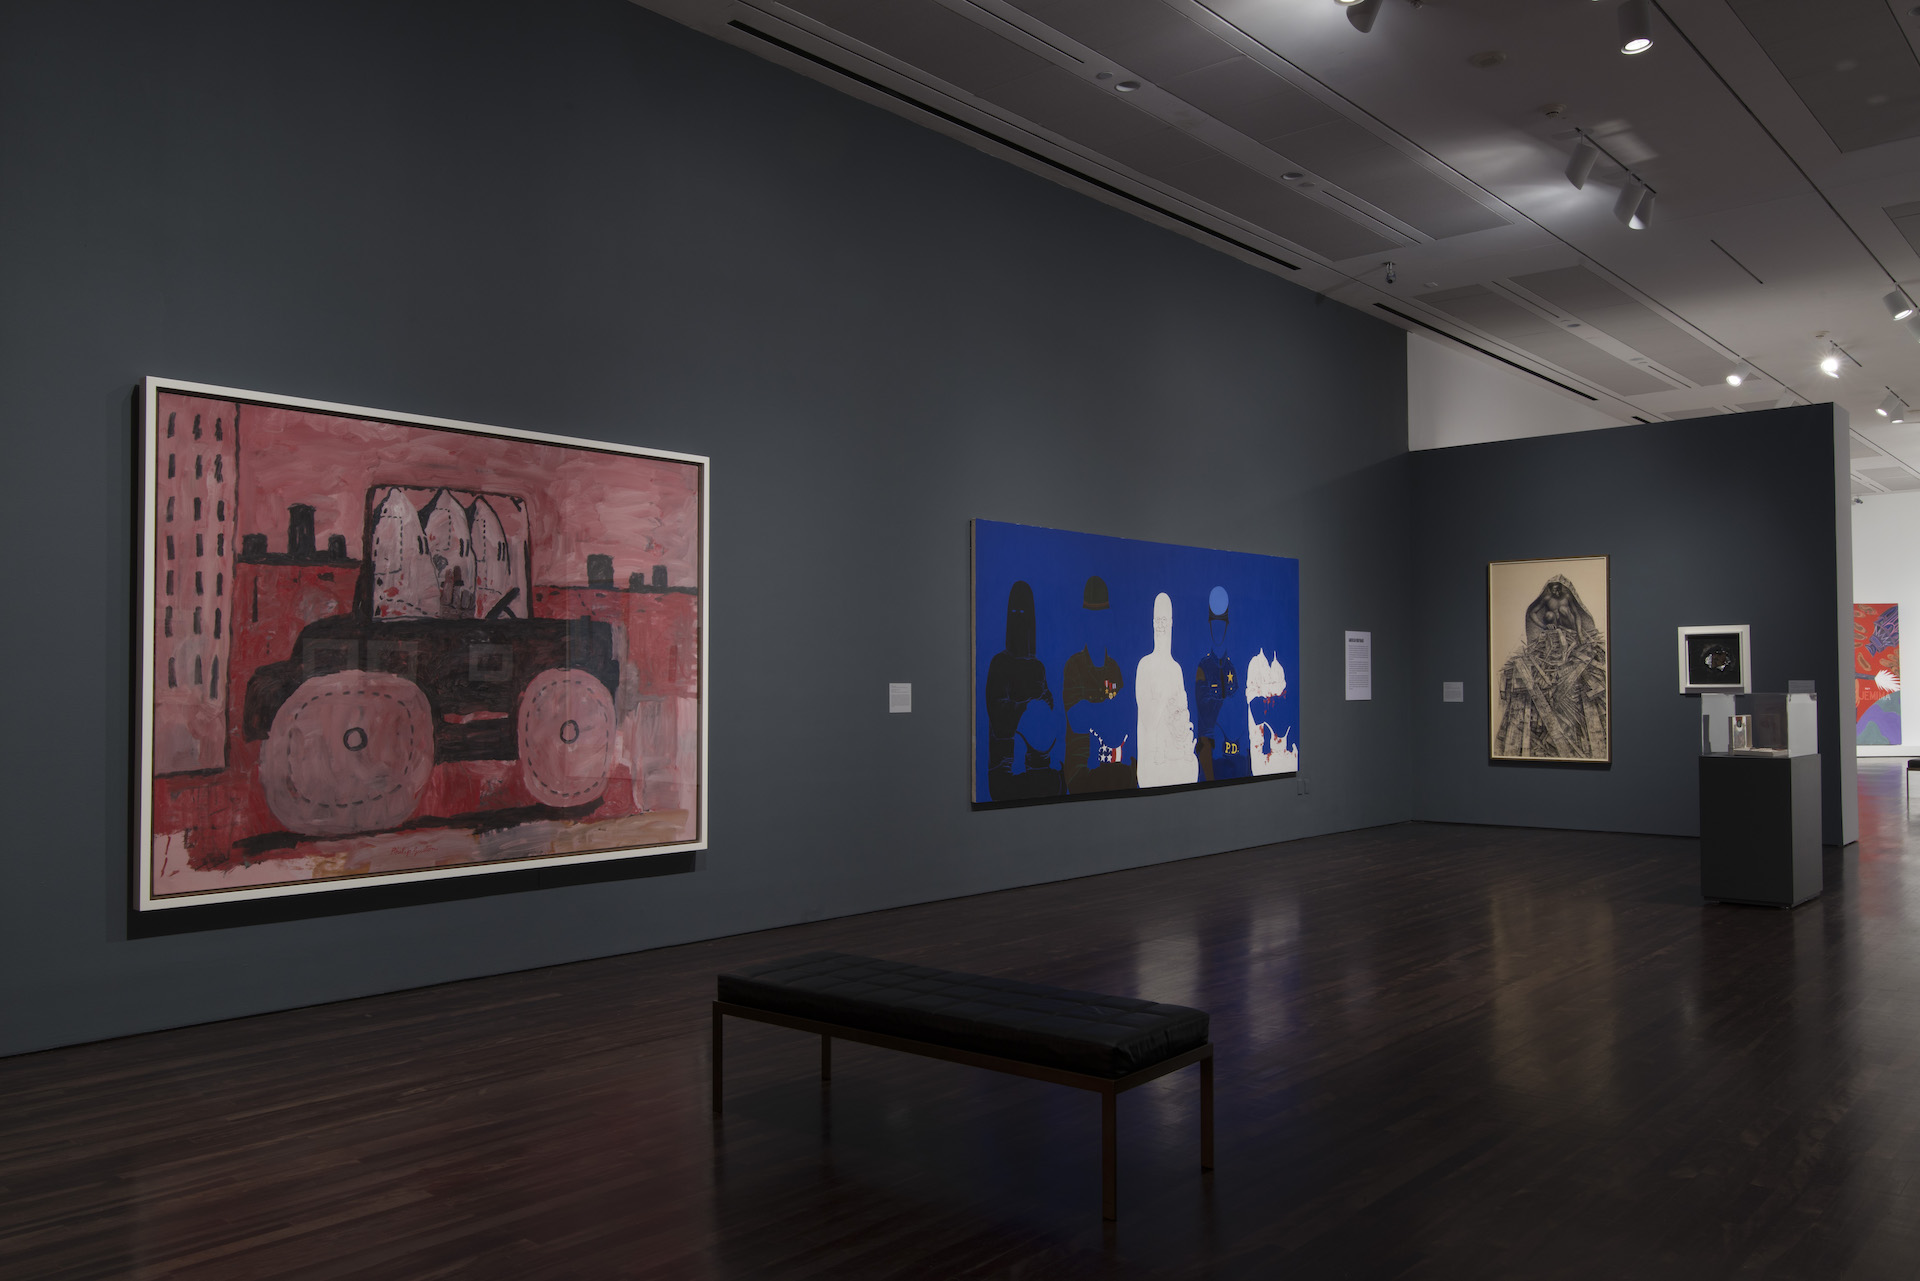 """Installation view of """"Witness: Art and Civil Rights in the Sixties"""" at theBlanton Museum of Art, The University of Texas at Austin, February 15–May 10, 2015. Multiple works of art are on display"""